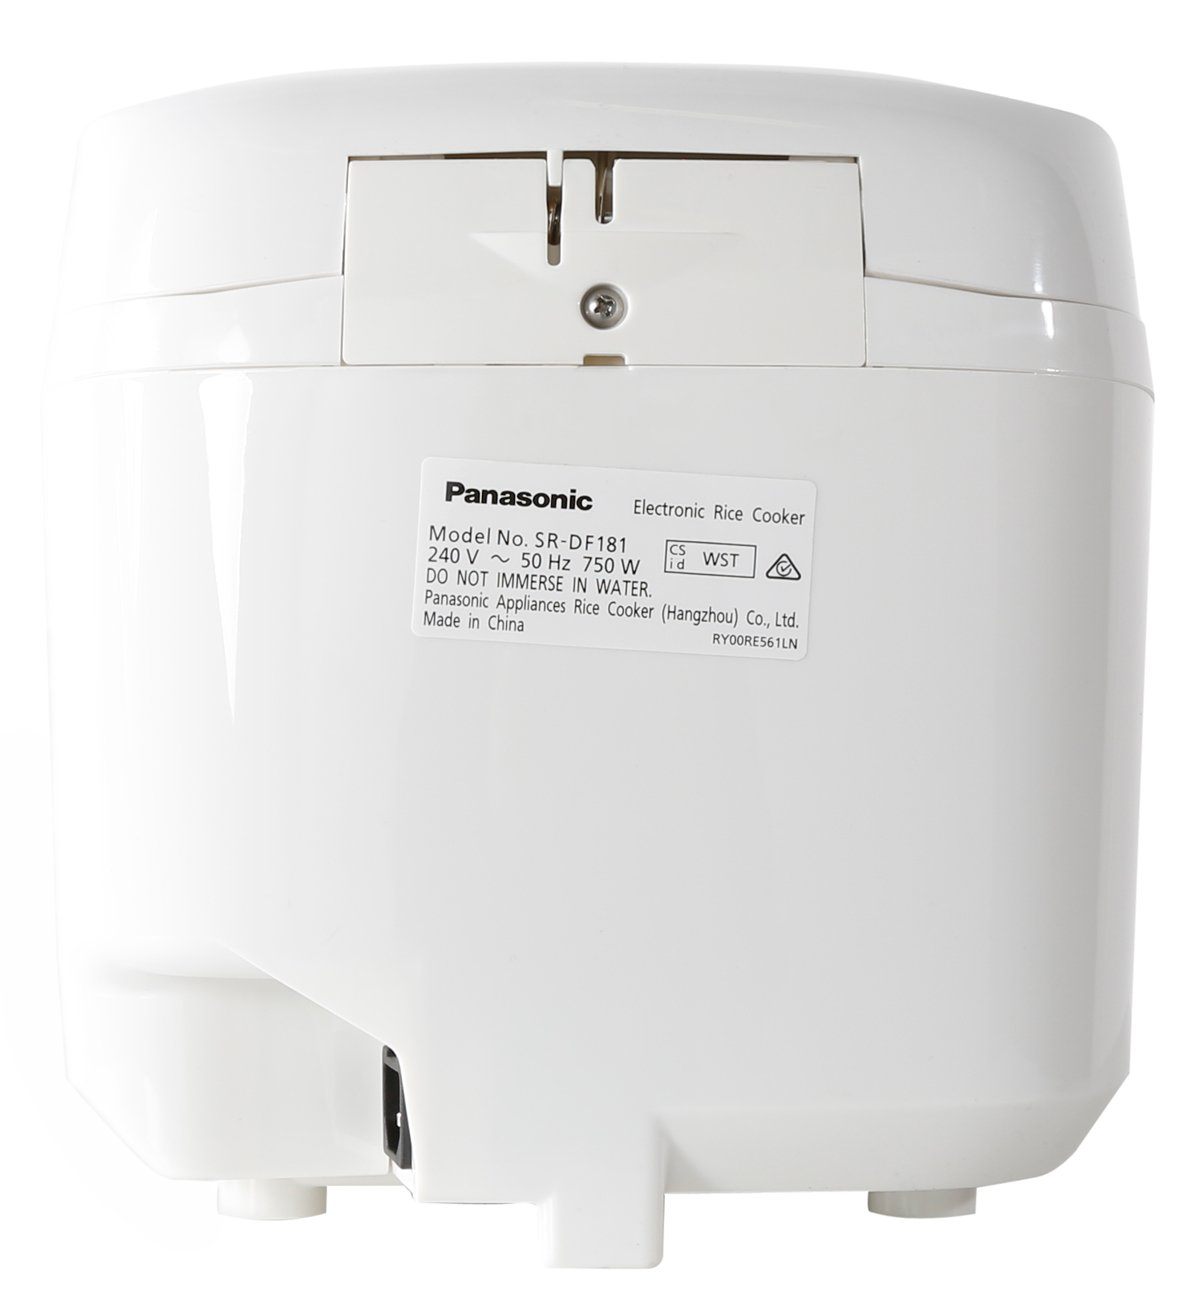 Wiring Diagram Rice Cooker Panasonic Sr Df181wst Appliances Online